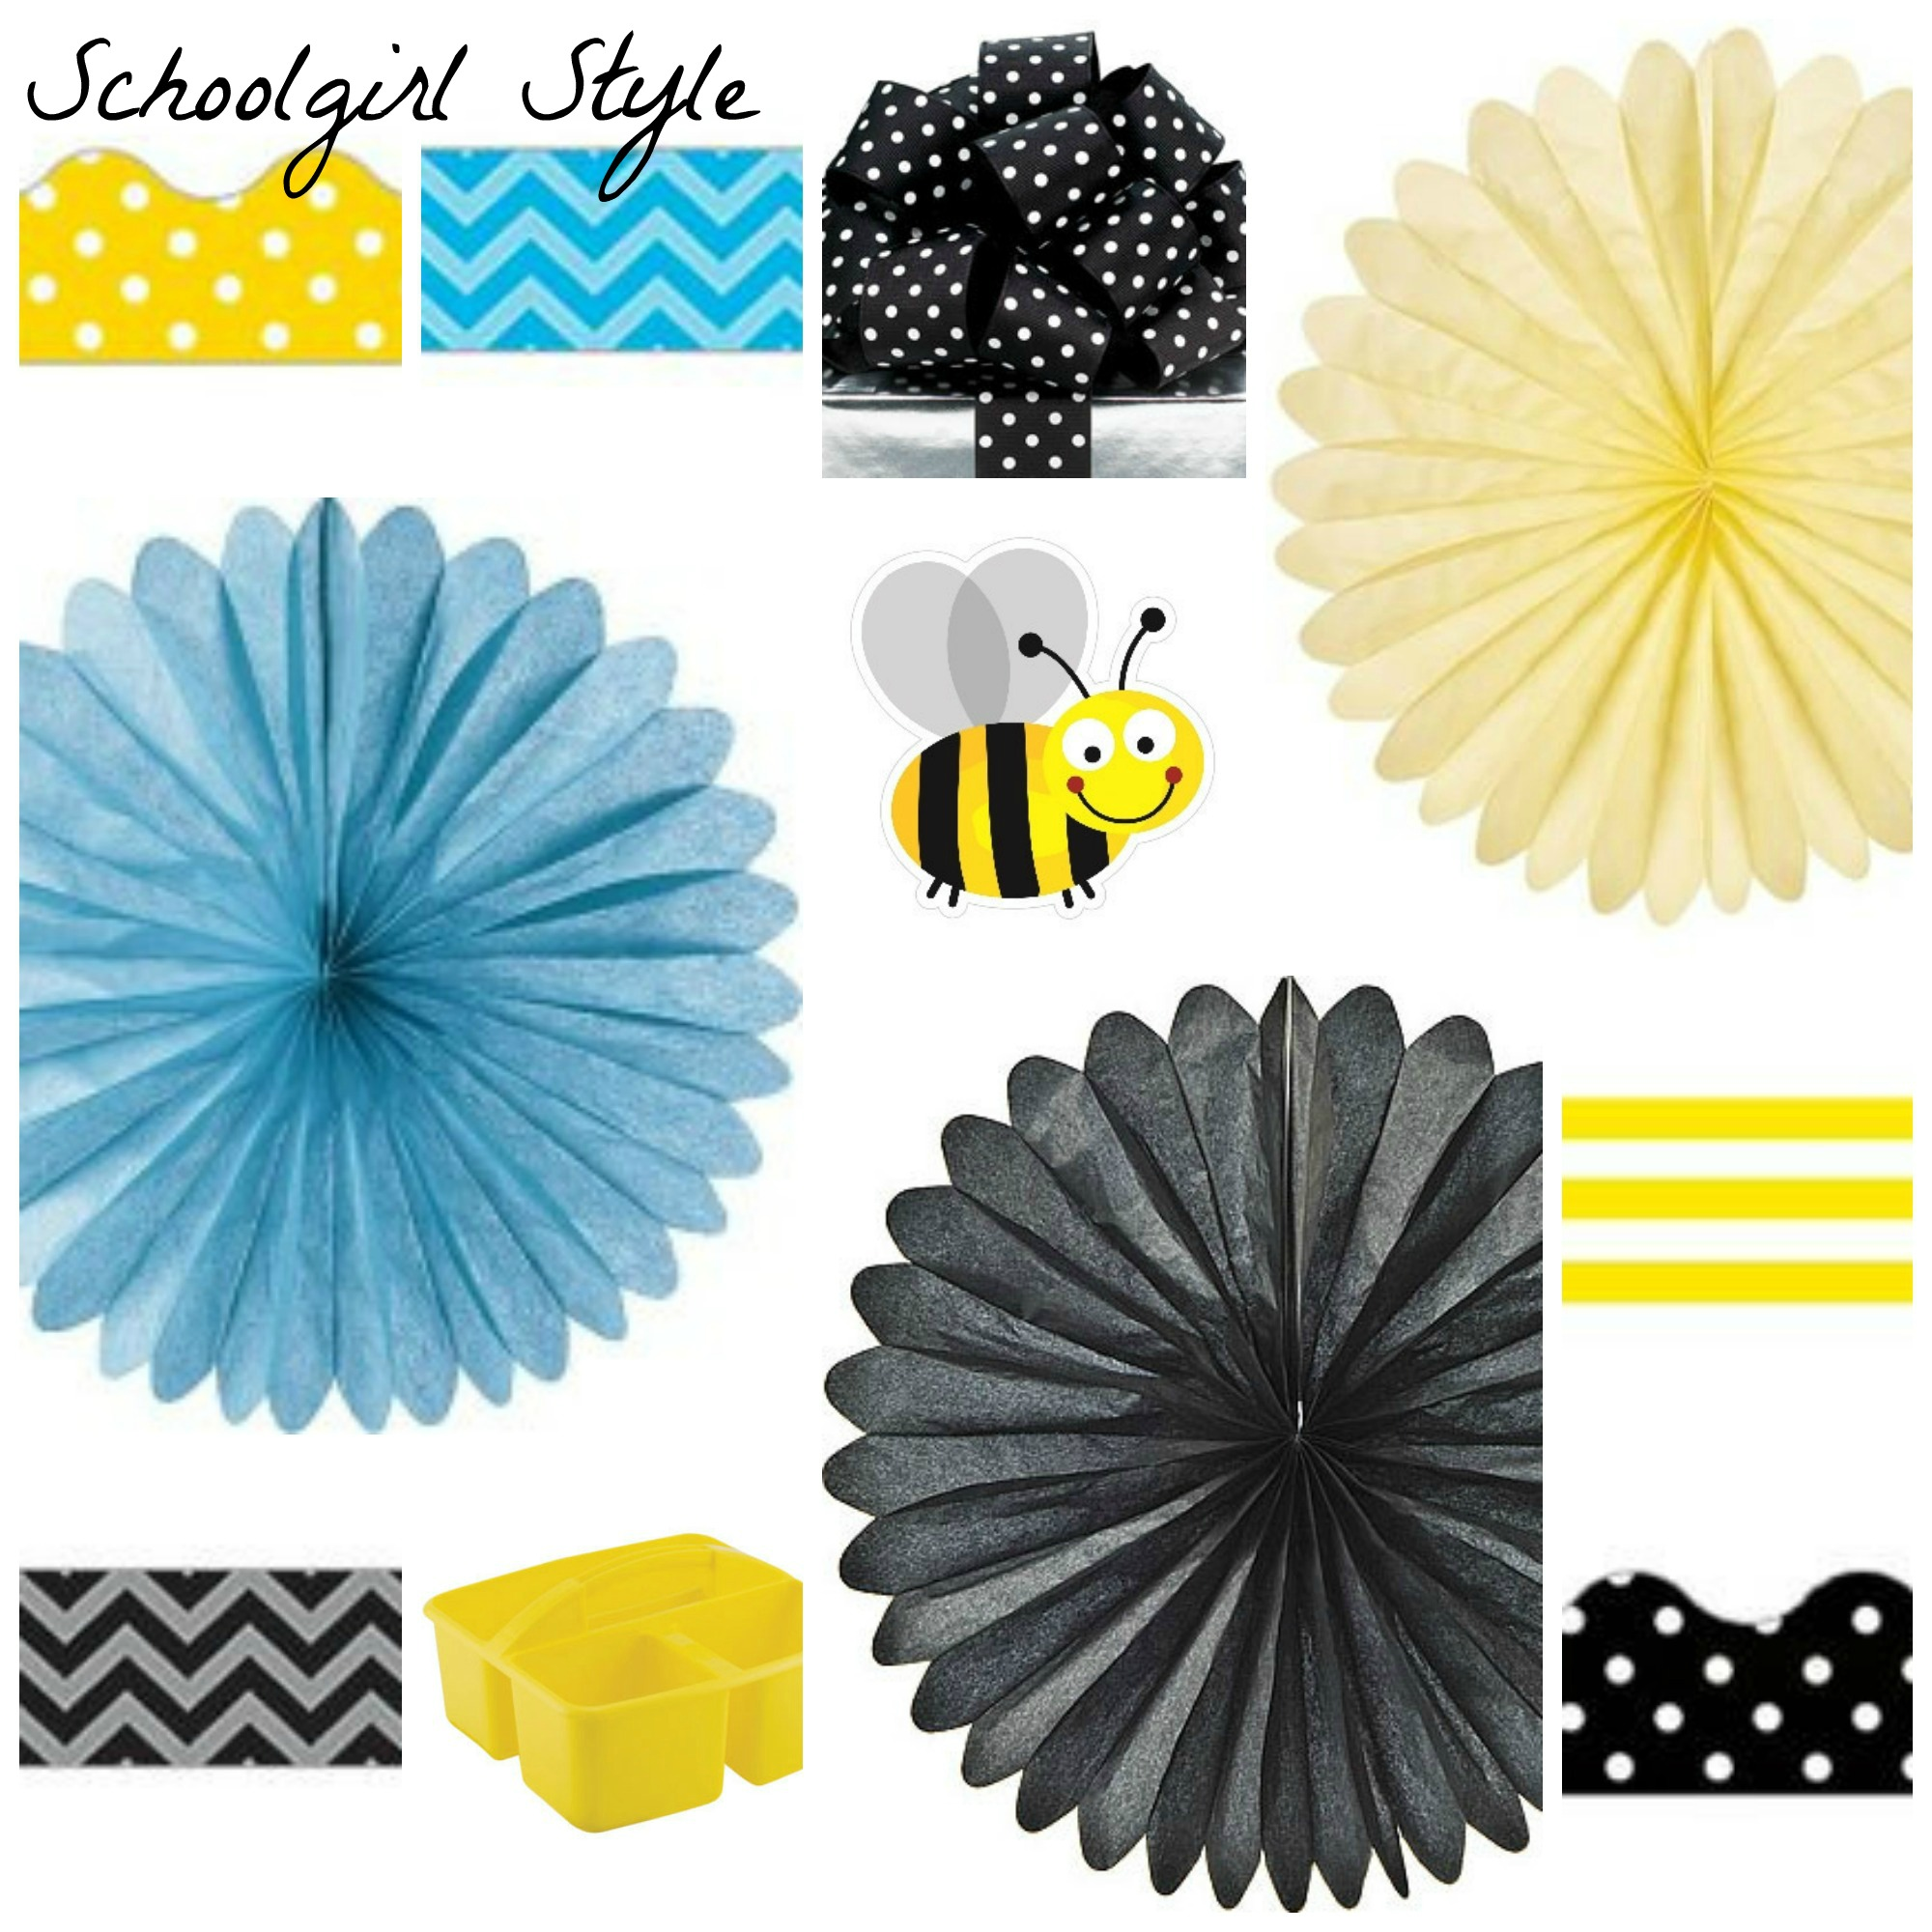 Yellow Classroom Decor ~ Polka dot party inspiration schoolgirlstyle